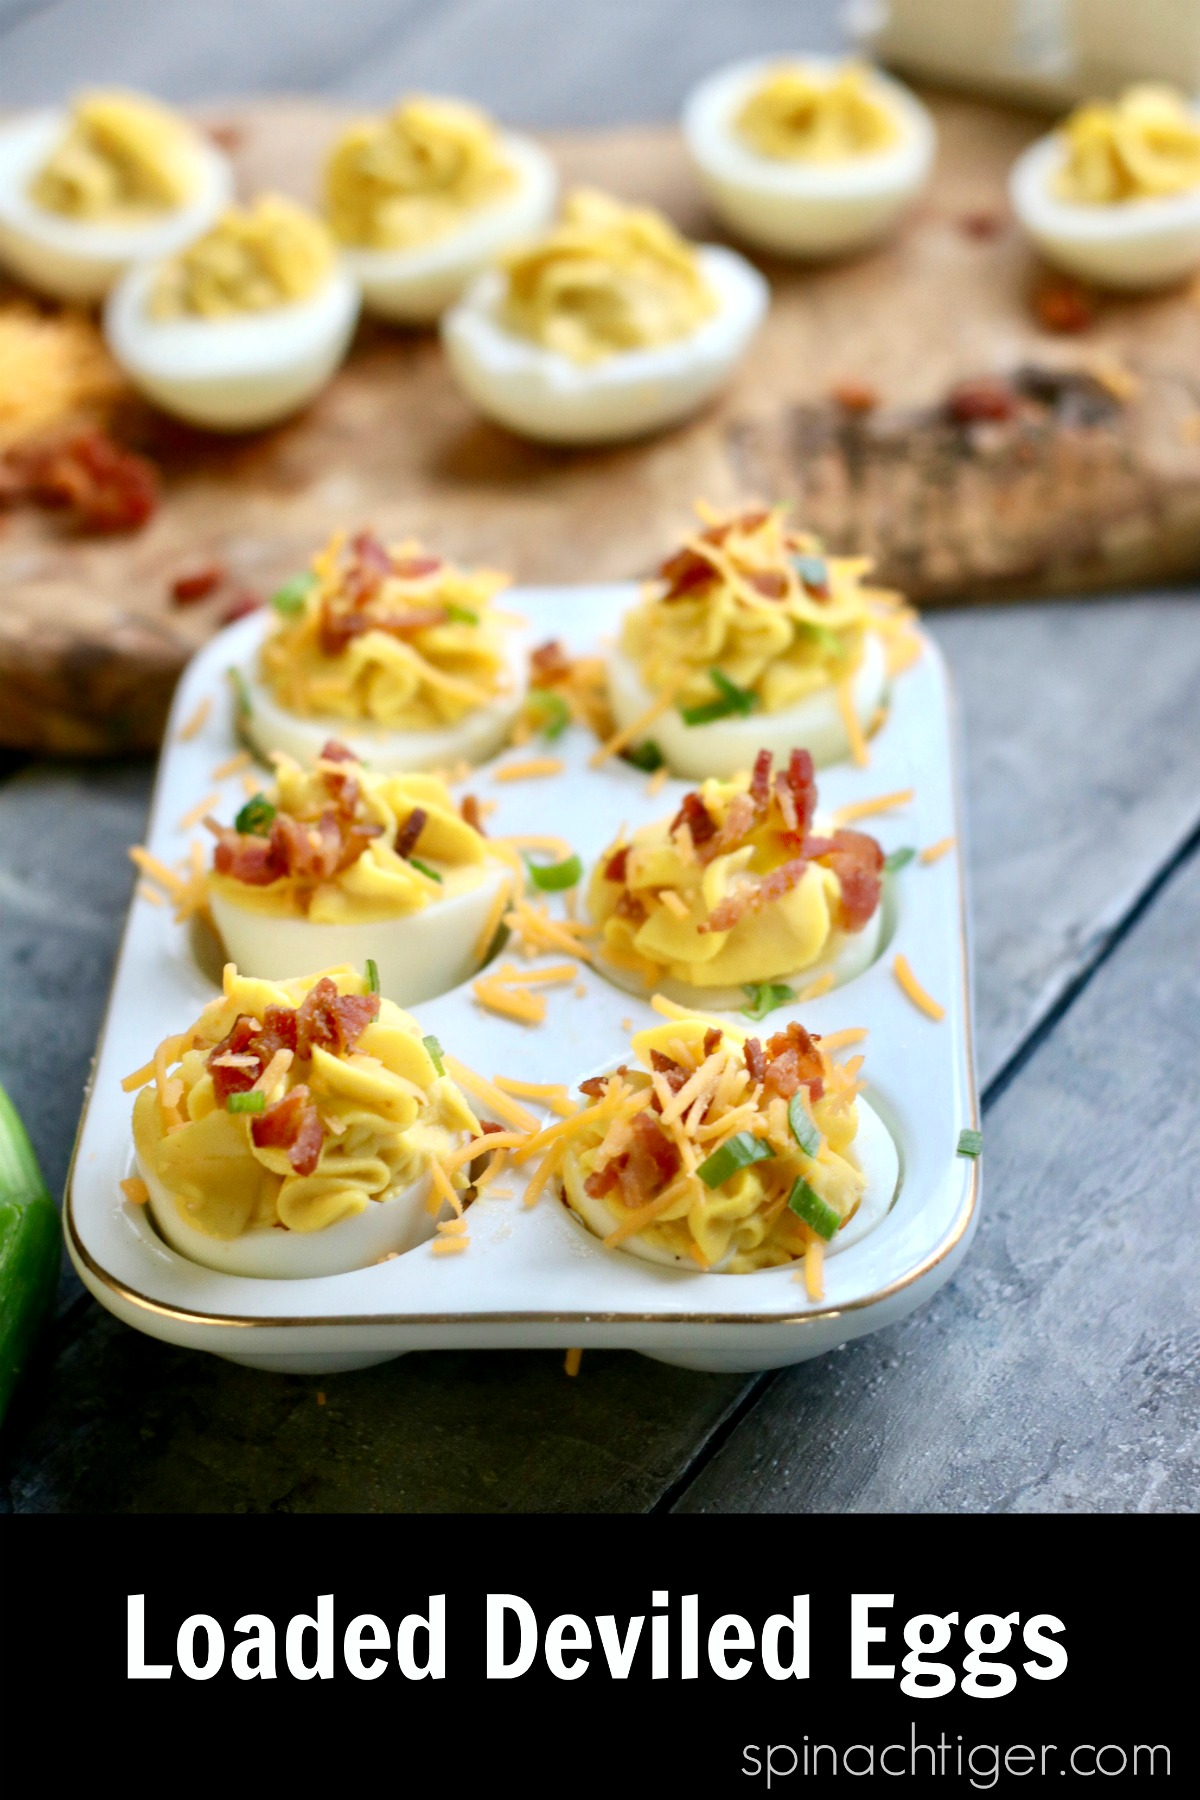 Make the best deviled eggs with cheddar, bacon and chives. #deviledeggs #betterbodyfoods #spinachtiger #ketoappetizer #ketosnack #hardboiledeggs #baconrecipe via @angelaroberts